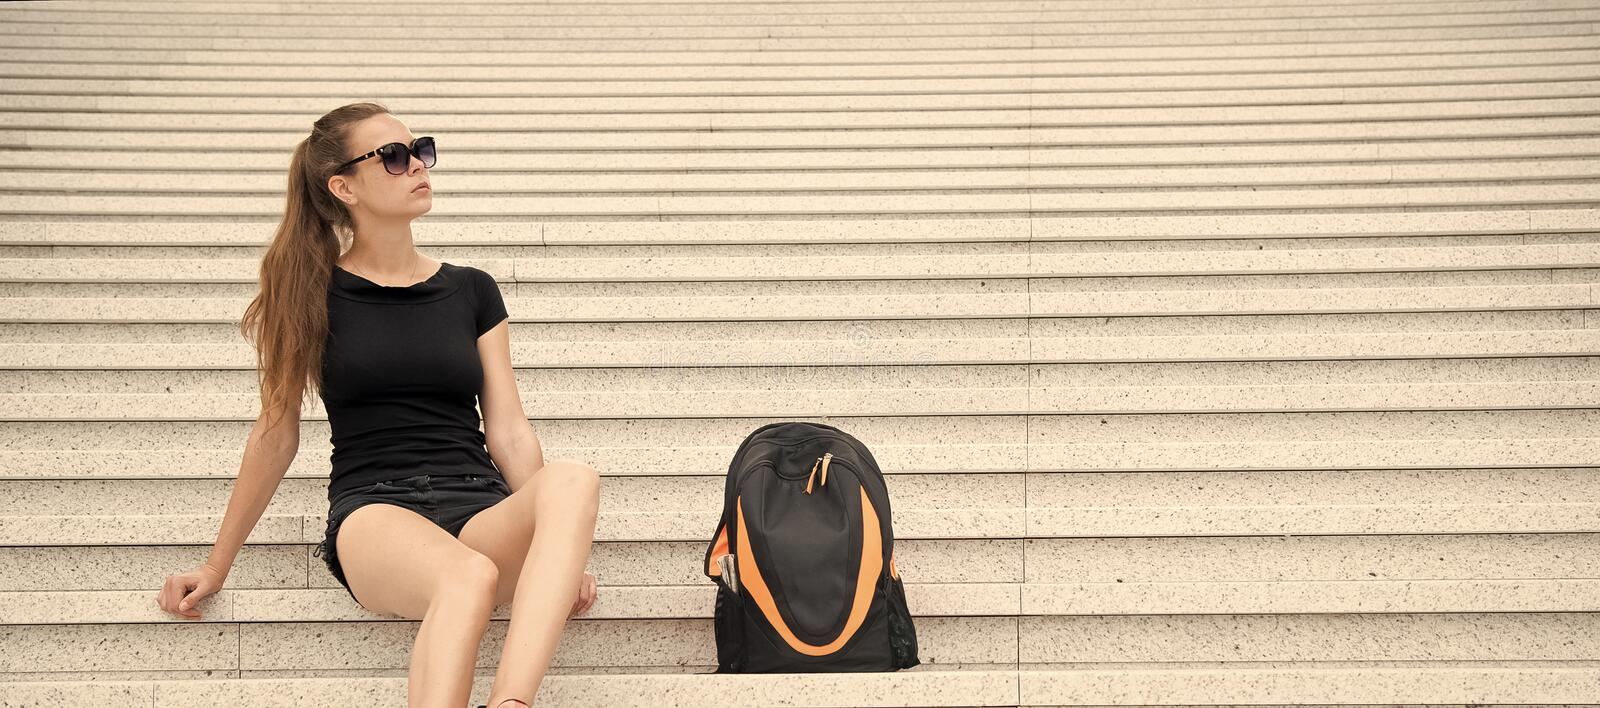 Girl tourist relaxing on stony stairs near her backpack. Take minute to relax. Woman sunglasses stylish black outfit stock photo